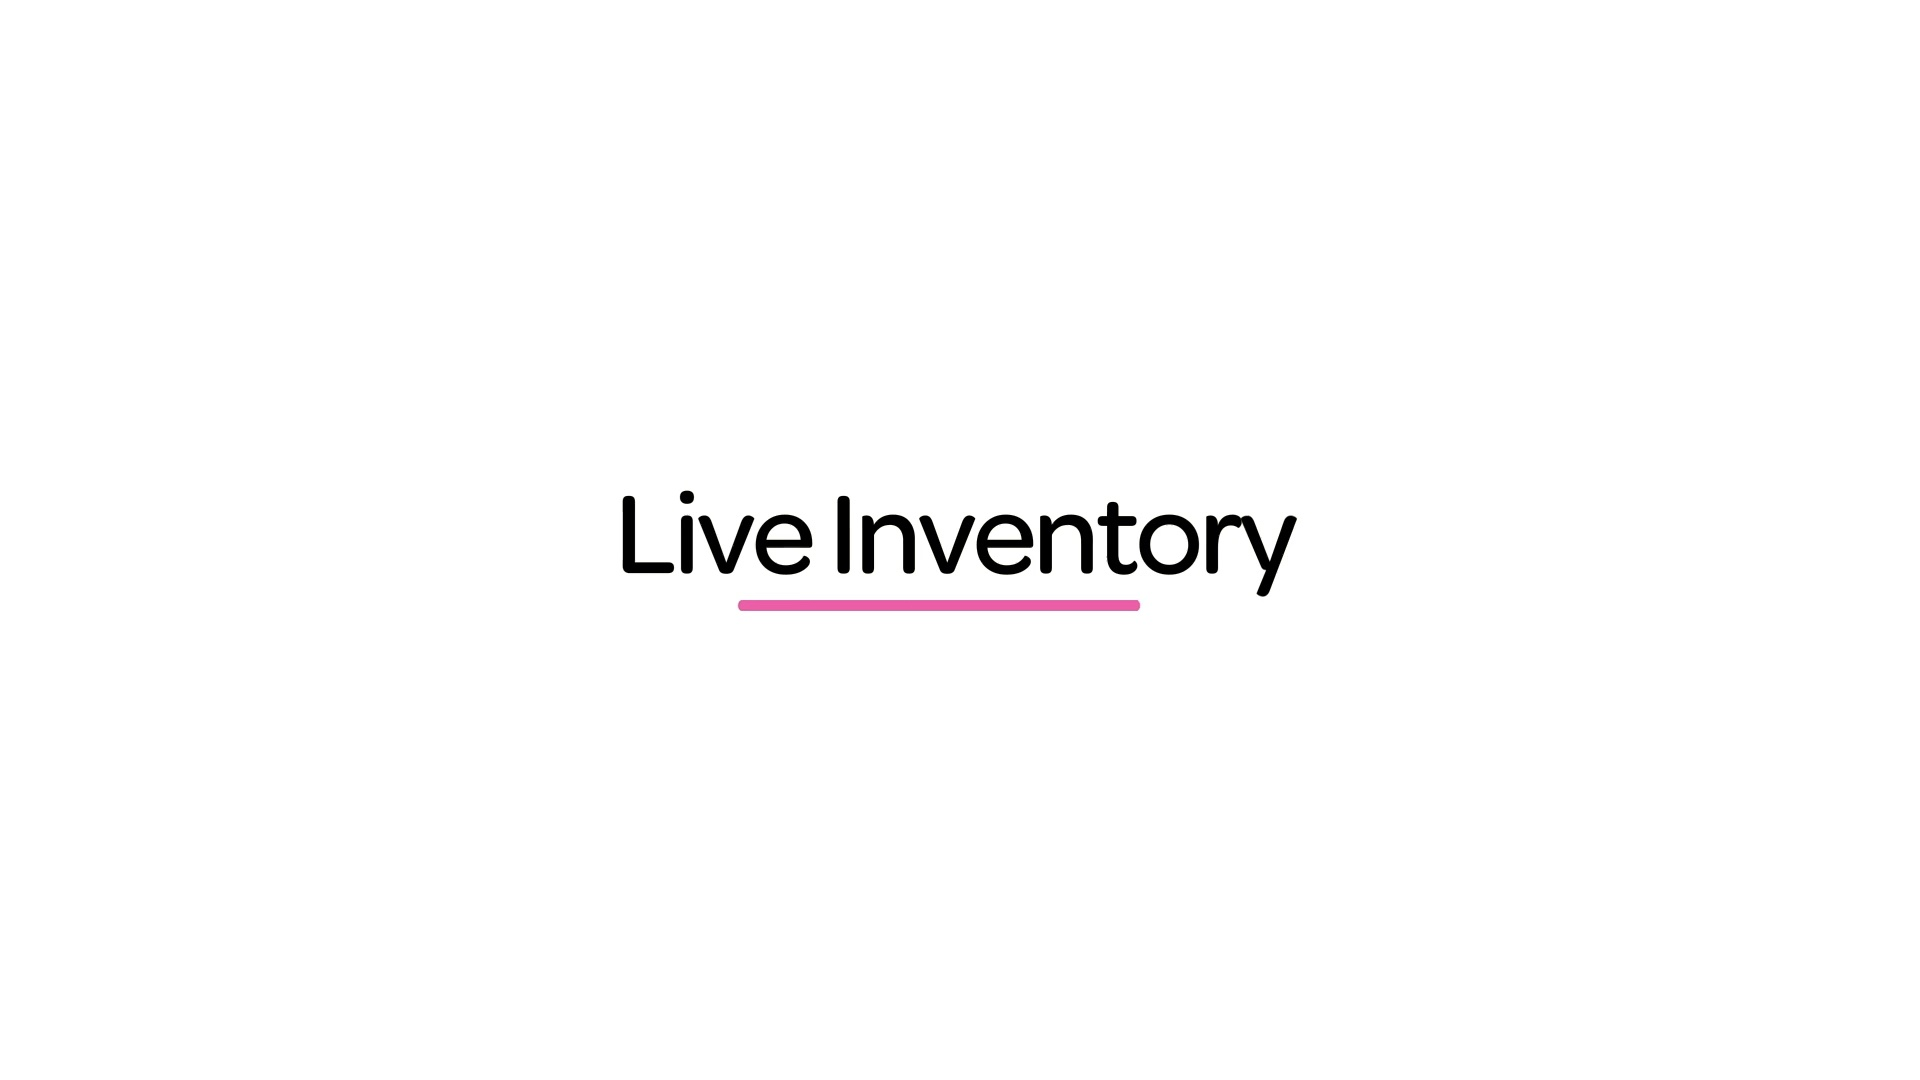 Customers are always presented with a living menu of services relevant to them, no matter the current inventory state.